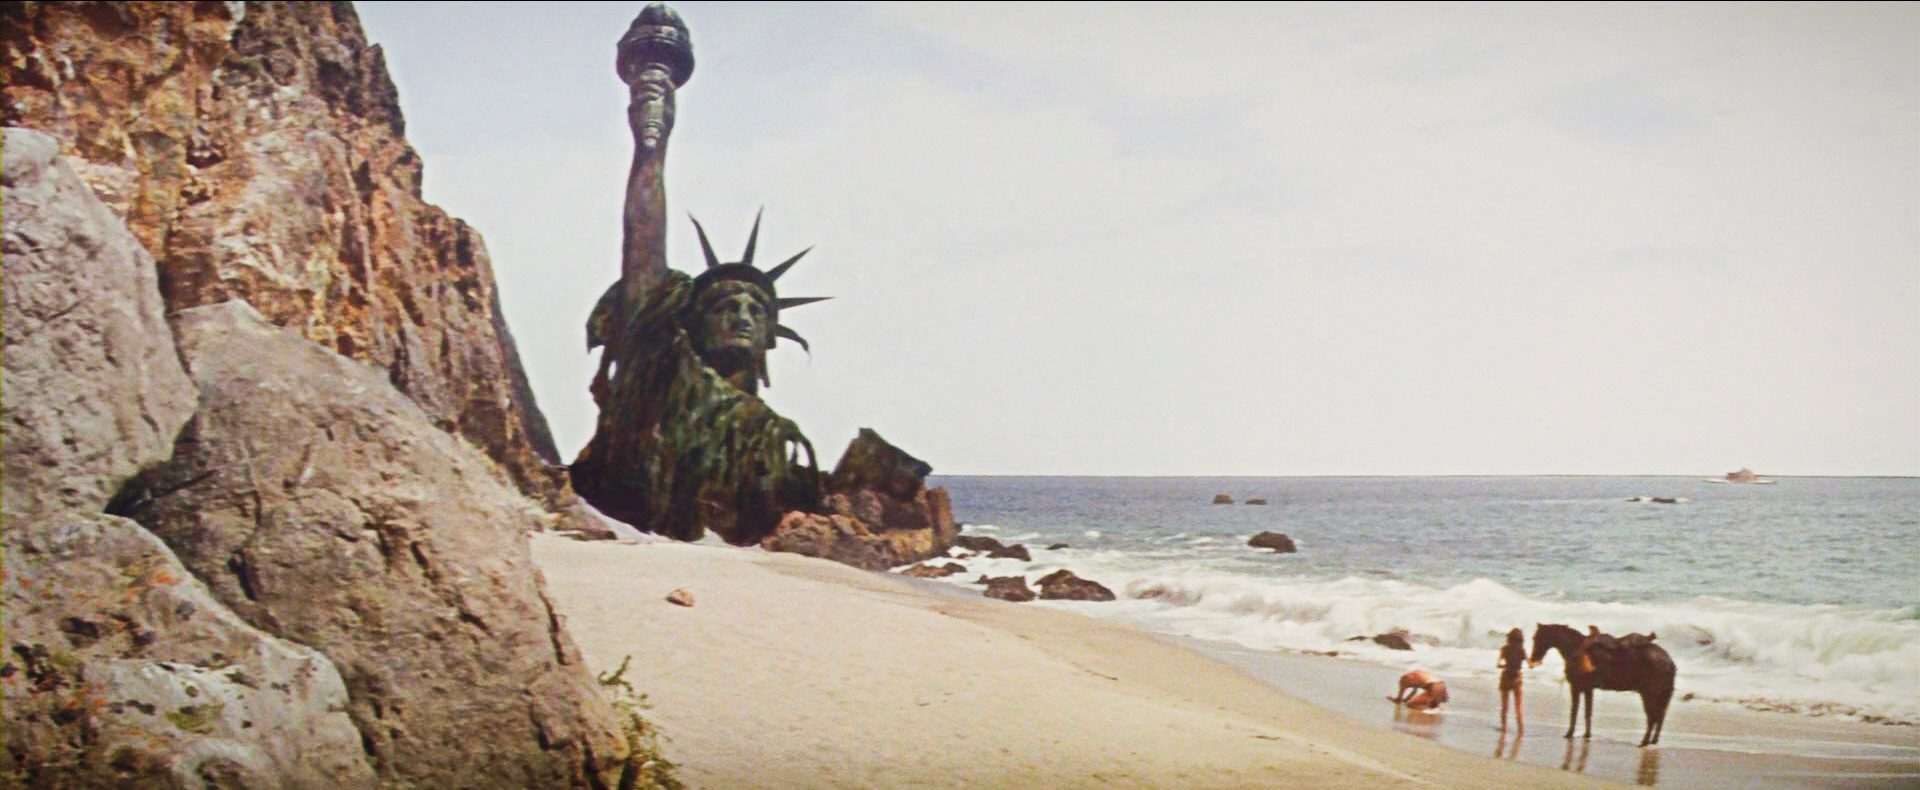 Planet-of-Apes-Statue-Liberty2-1